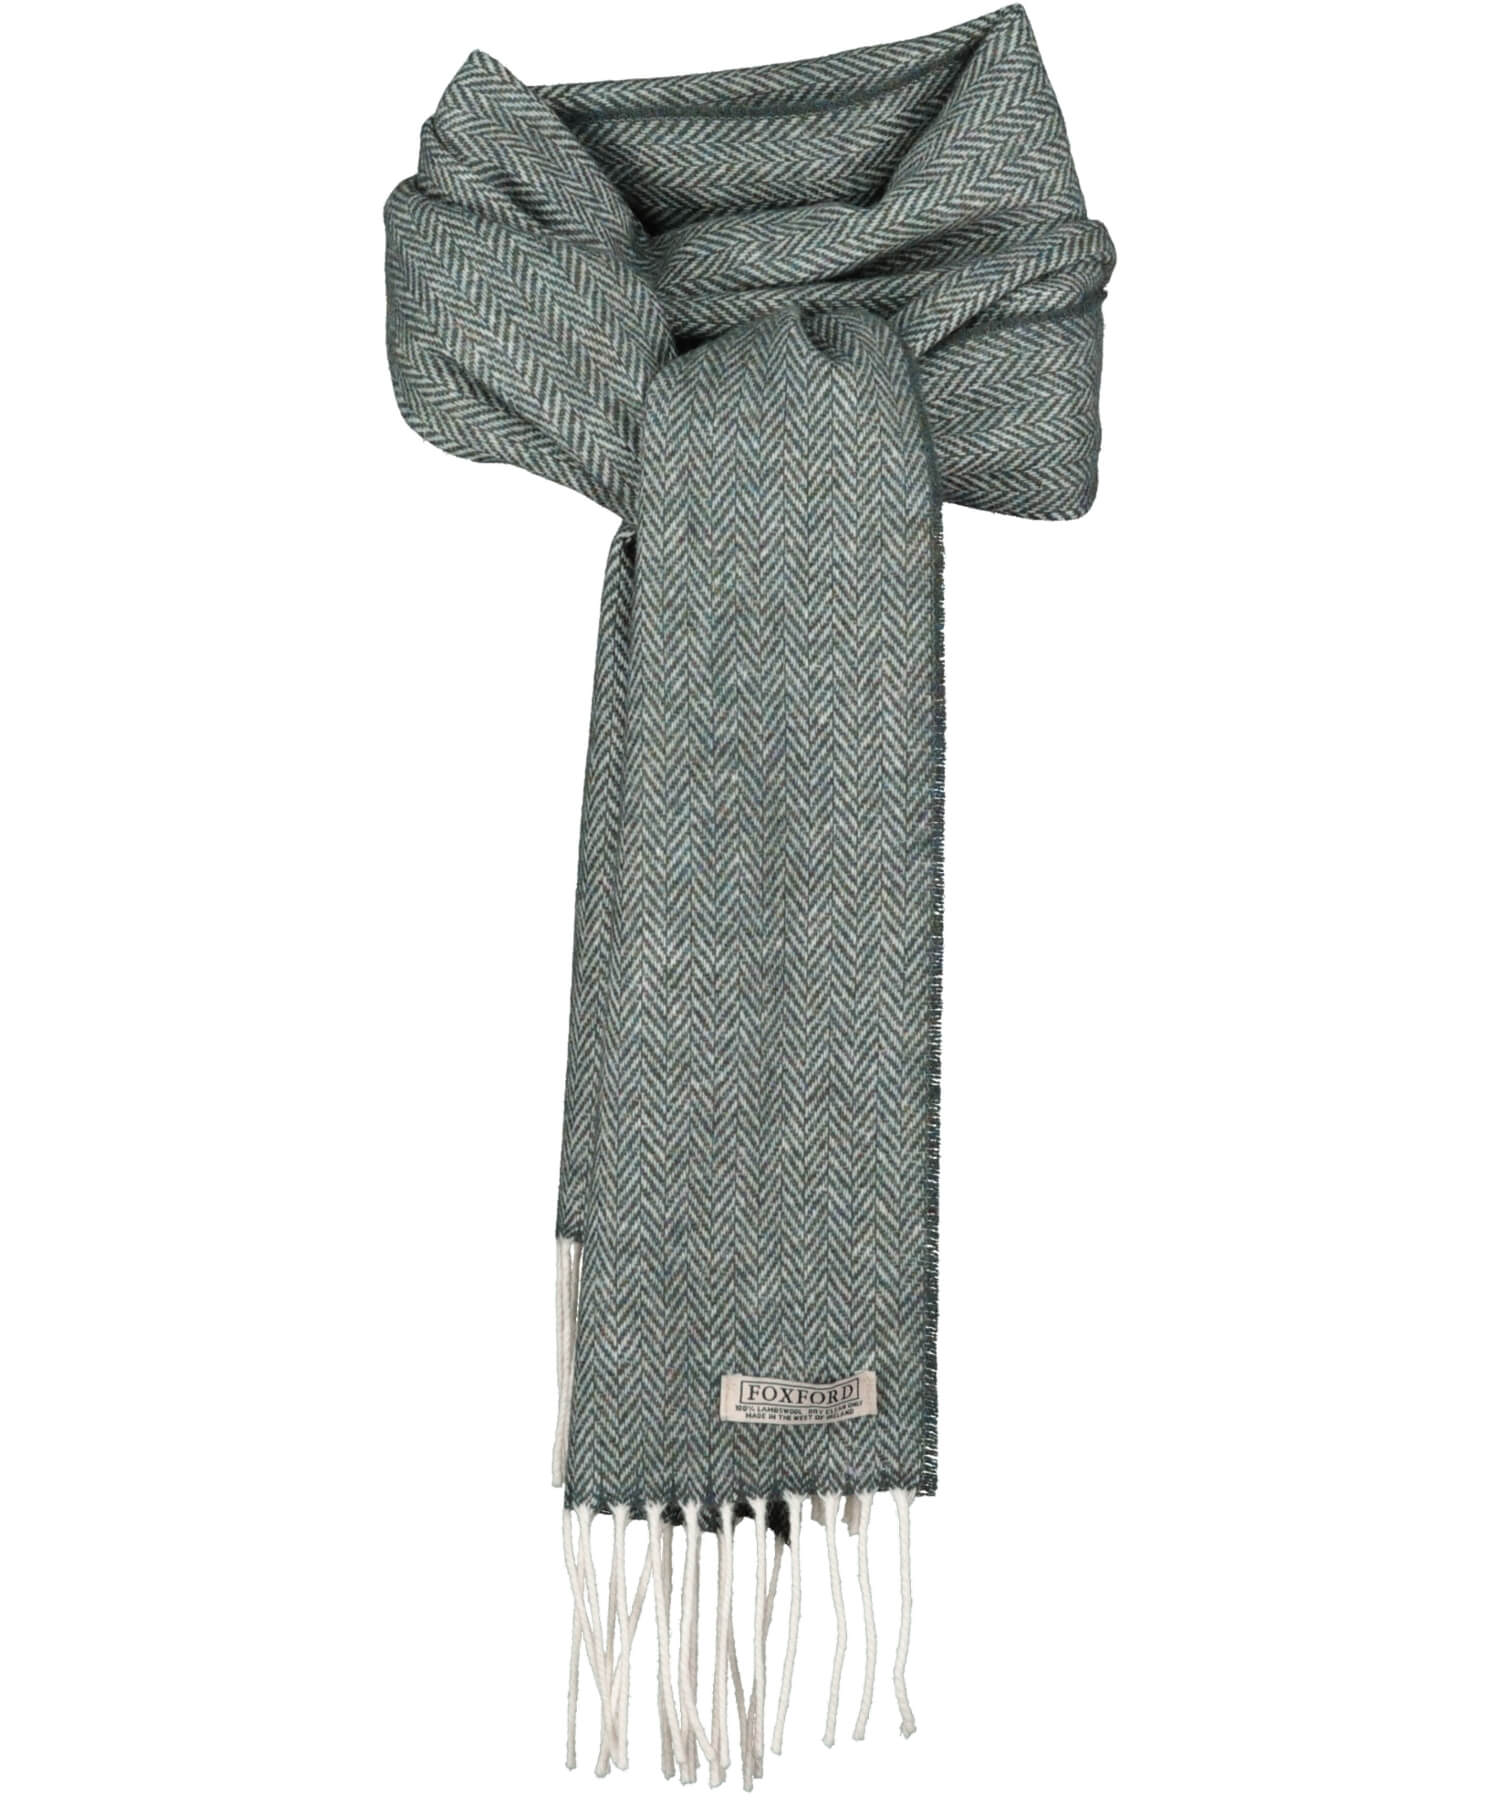 Lambswool Scarf - Emerald Herringbone - [Foxford] - Unisex Scarves - Irish Gifts